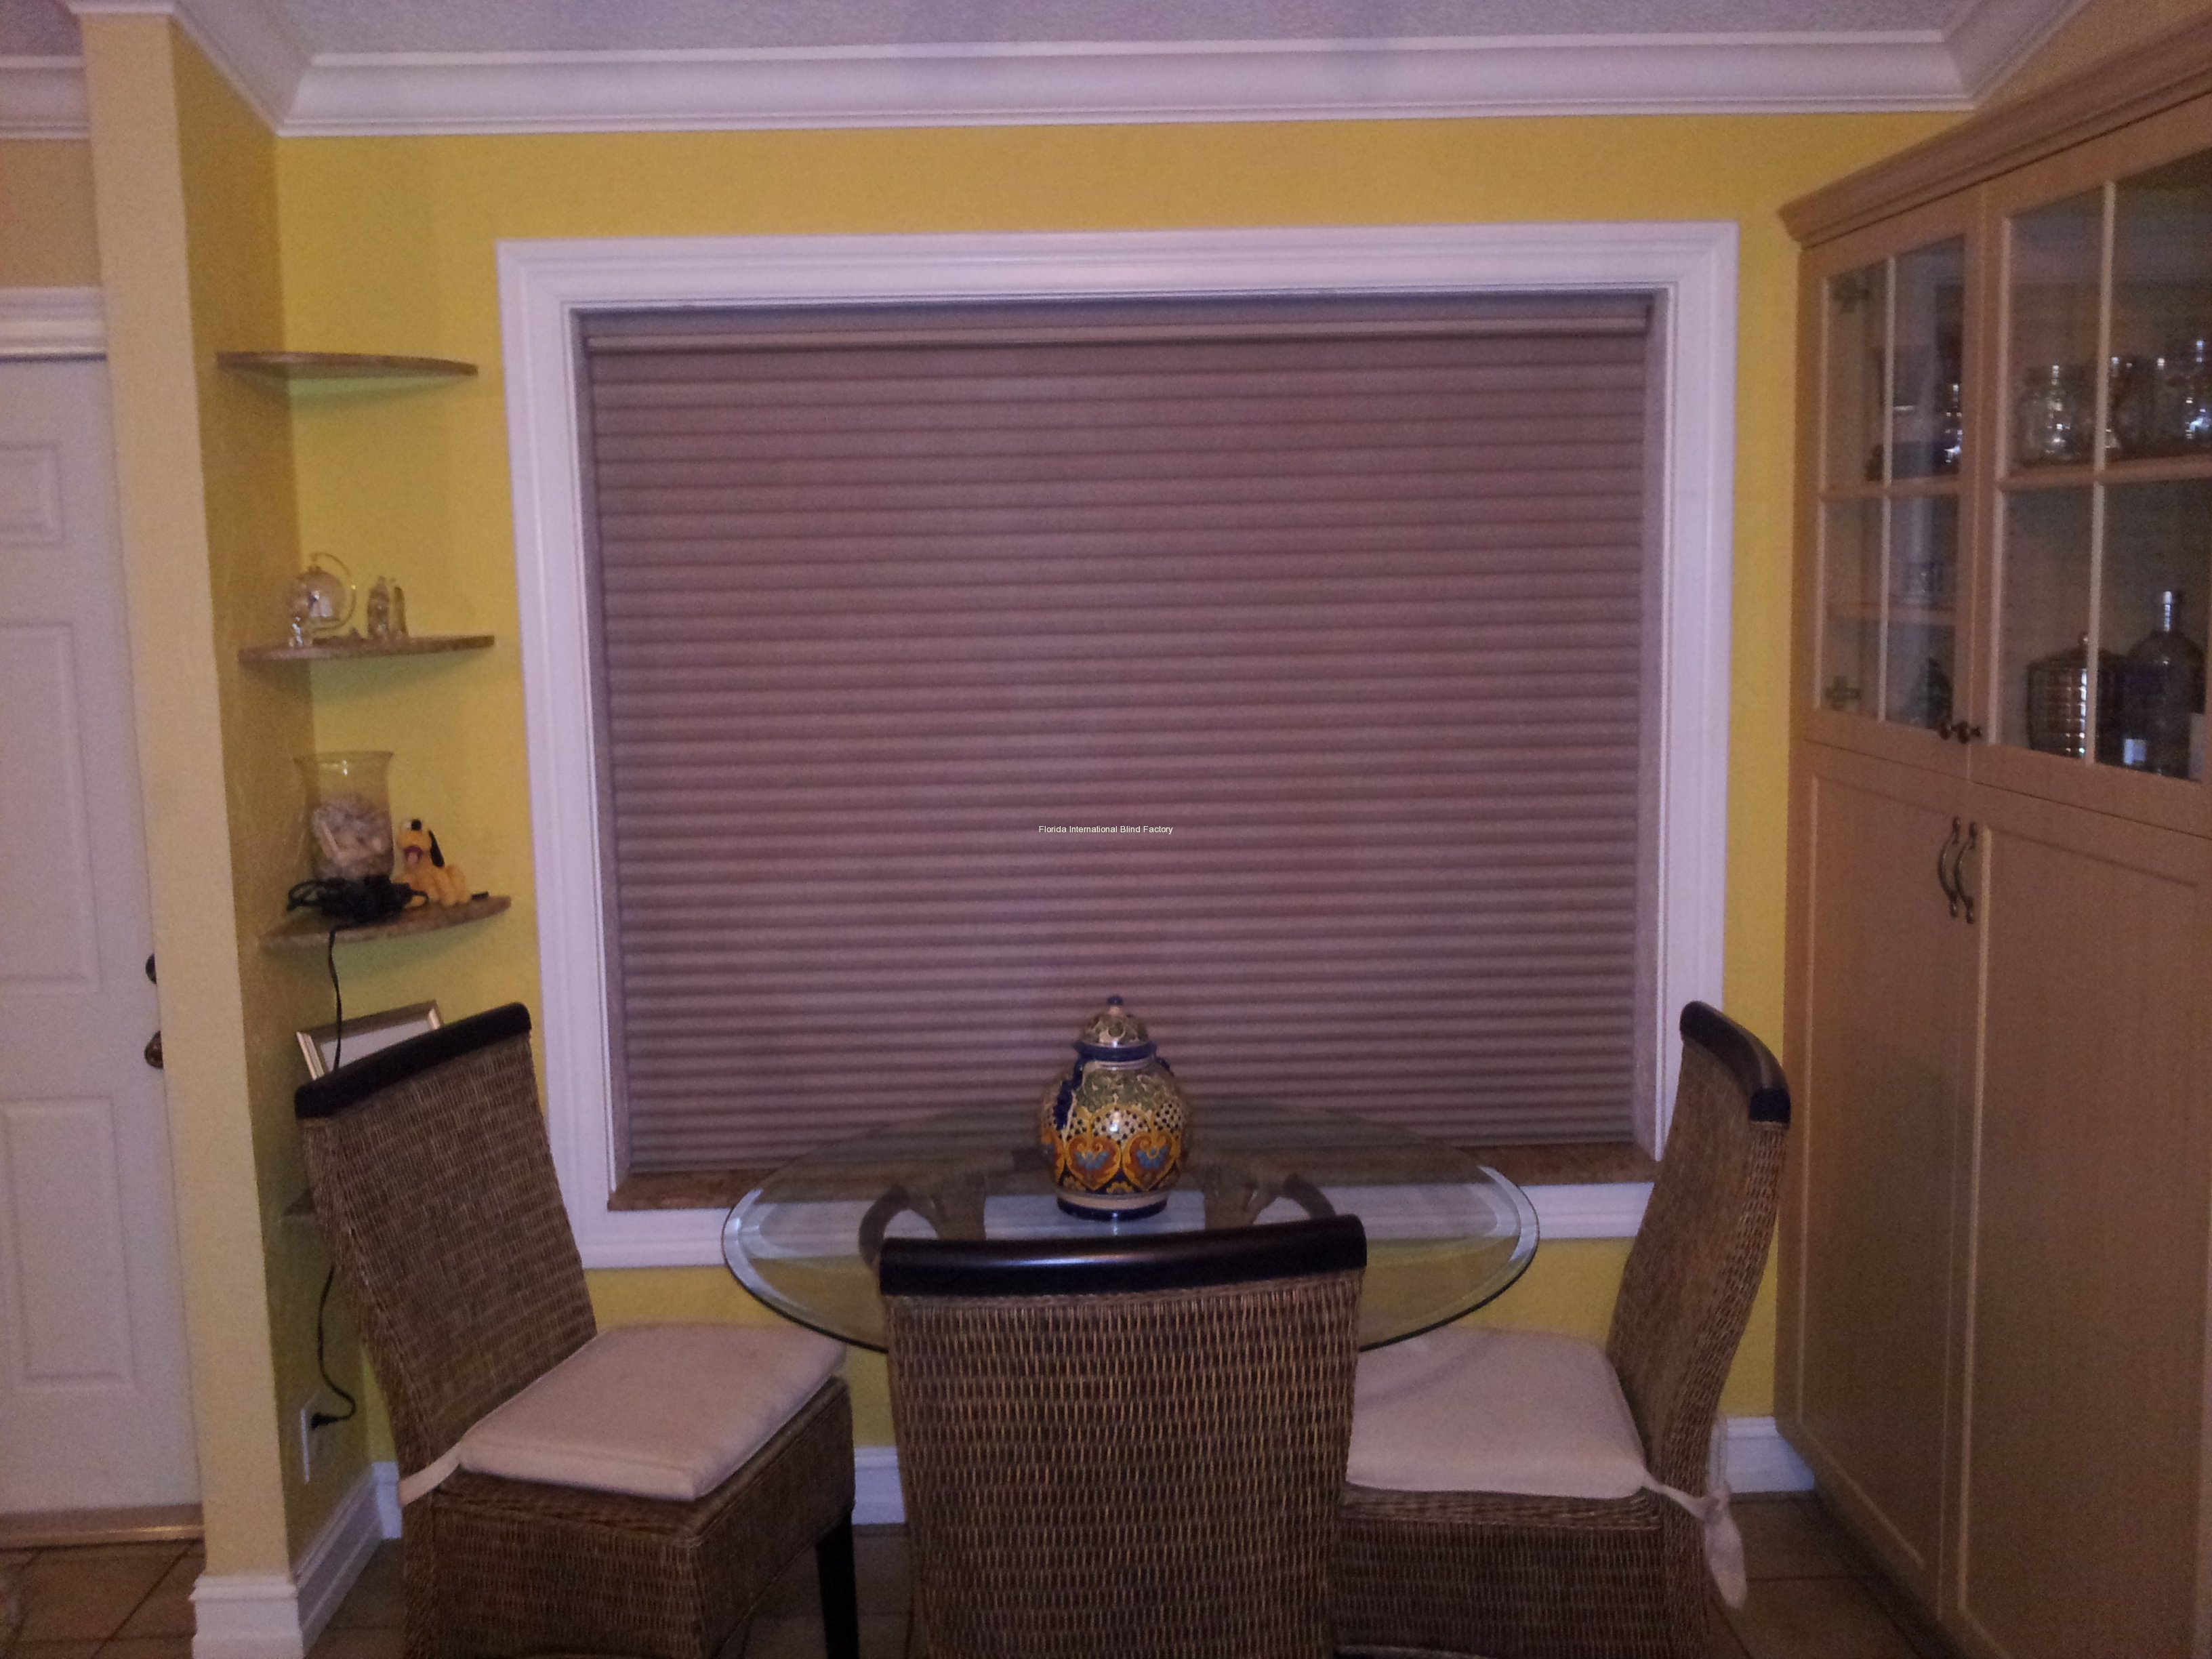 Hunter douglas duette honeycomb shades manufacturers of for Hunter douglas motorized blinds parts